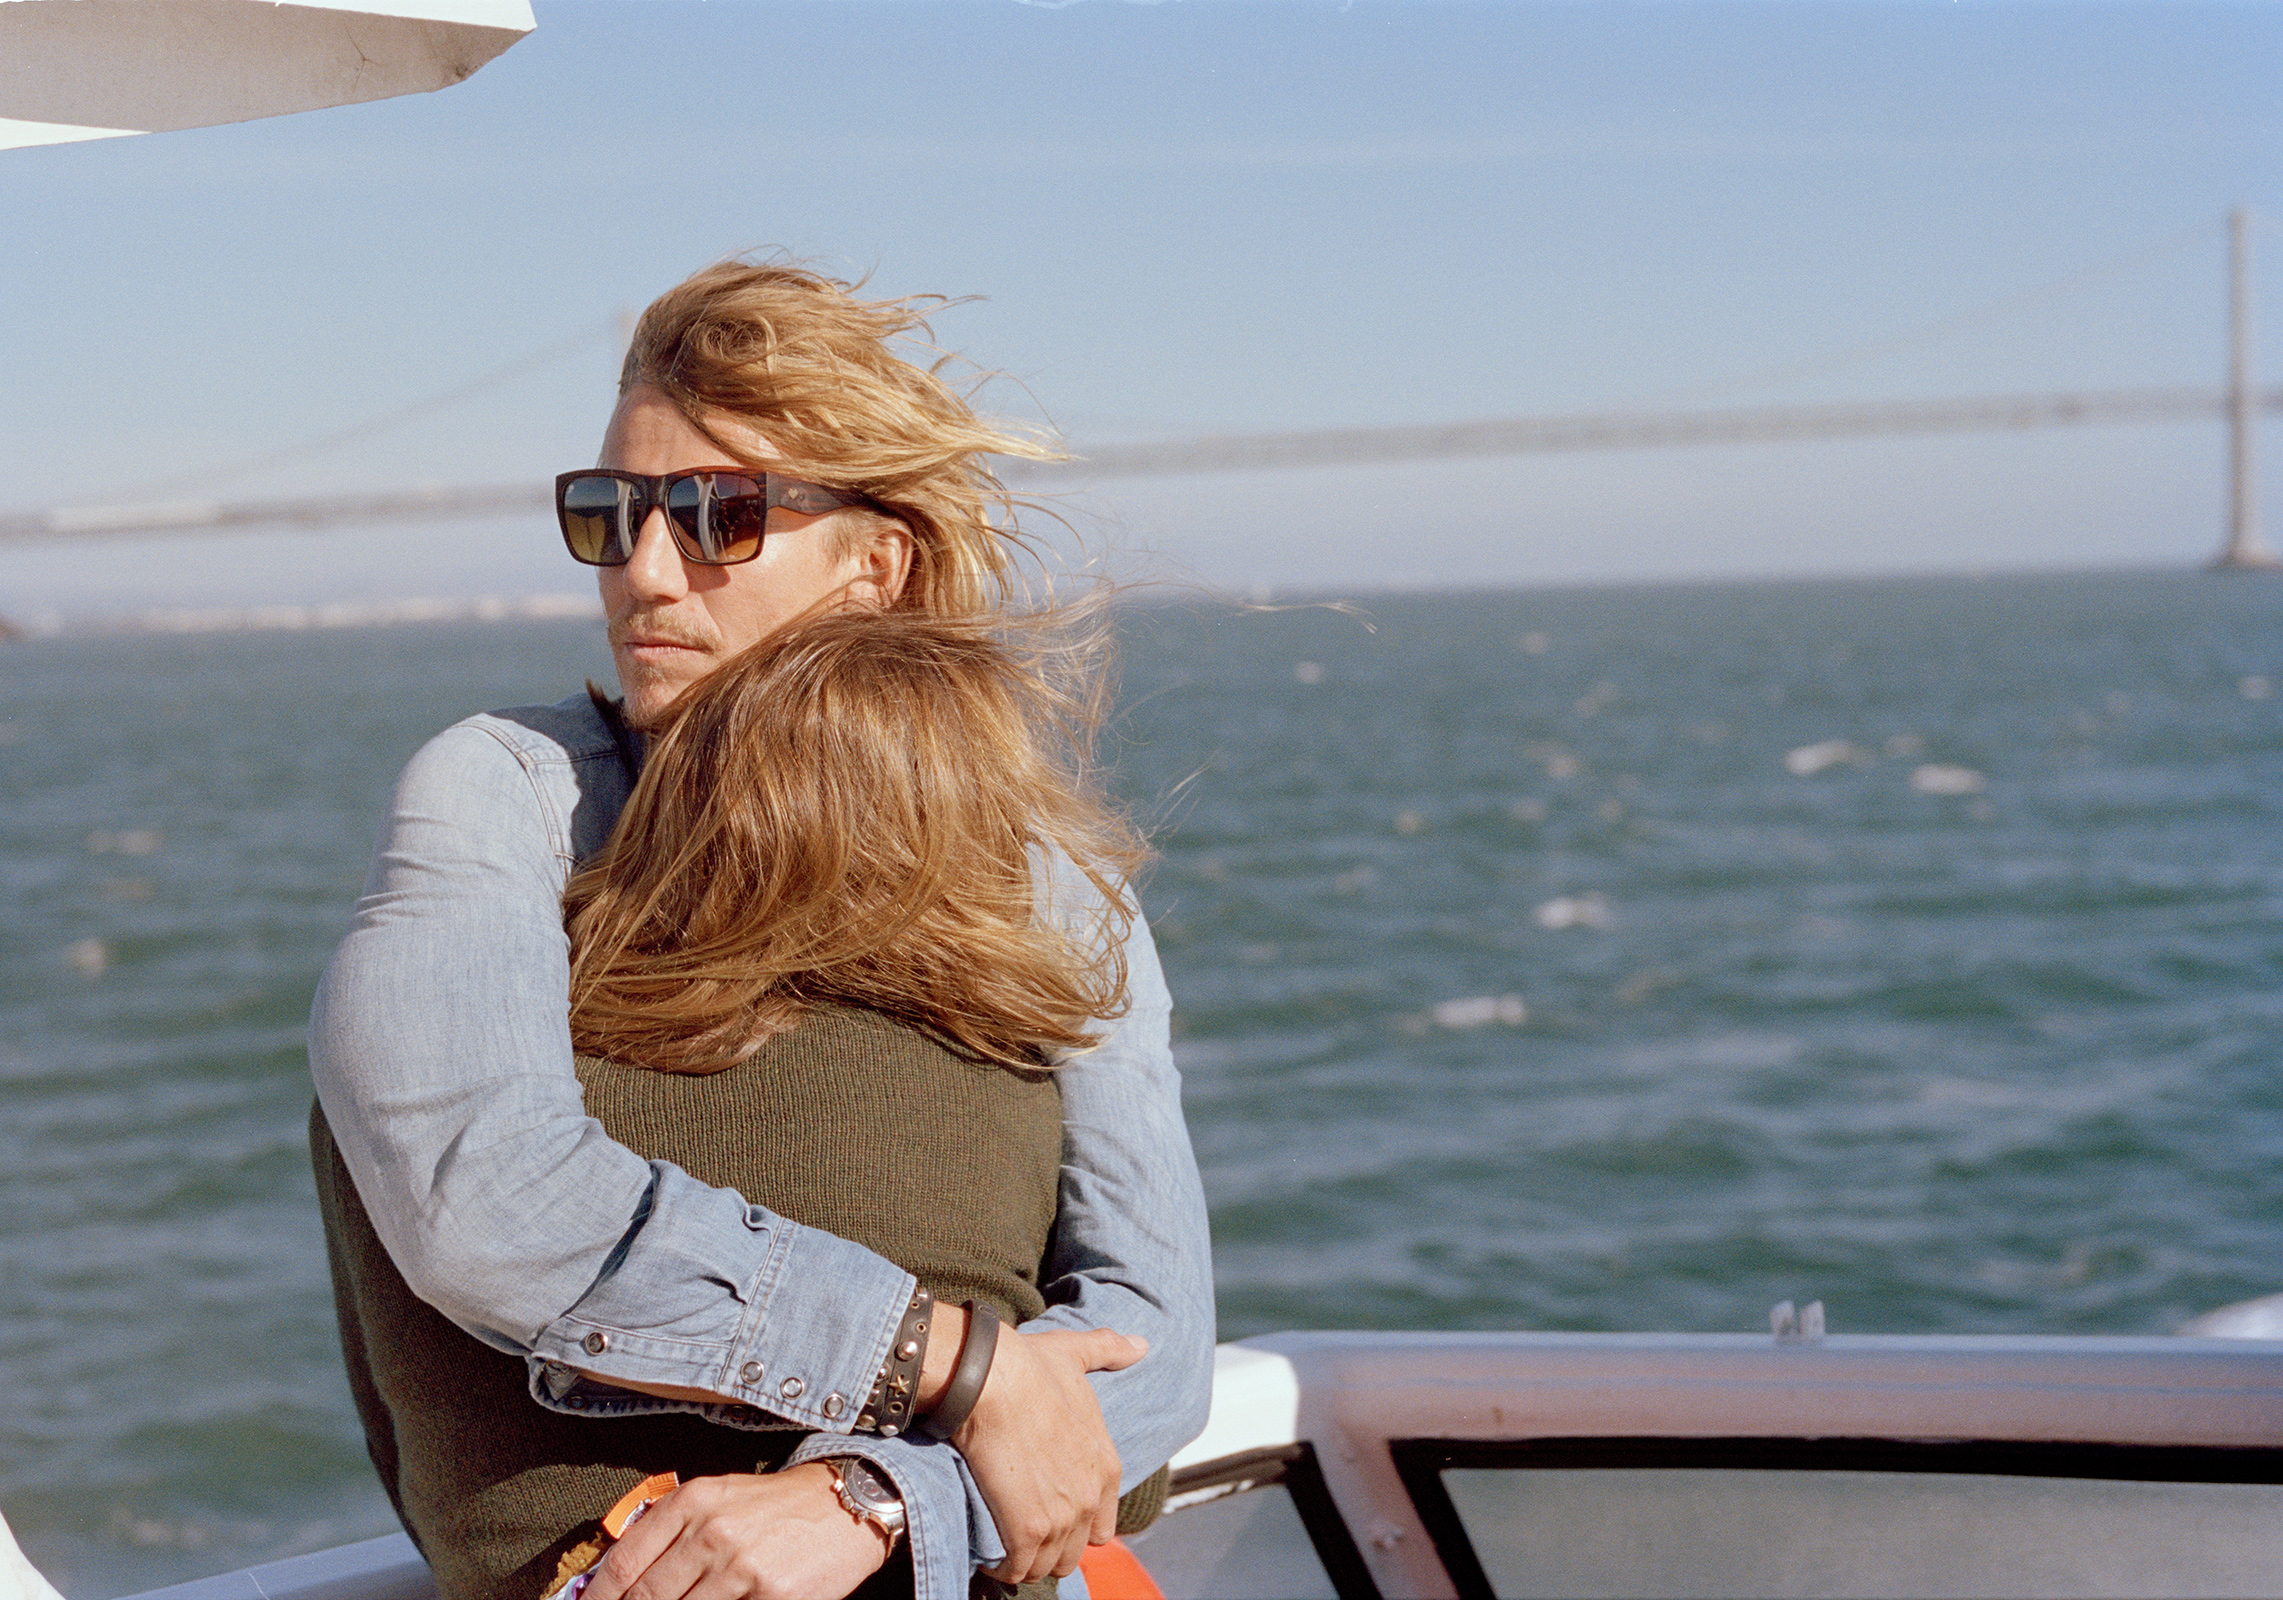 couple-on-ferry-s.f.-2012.jpg